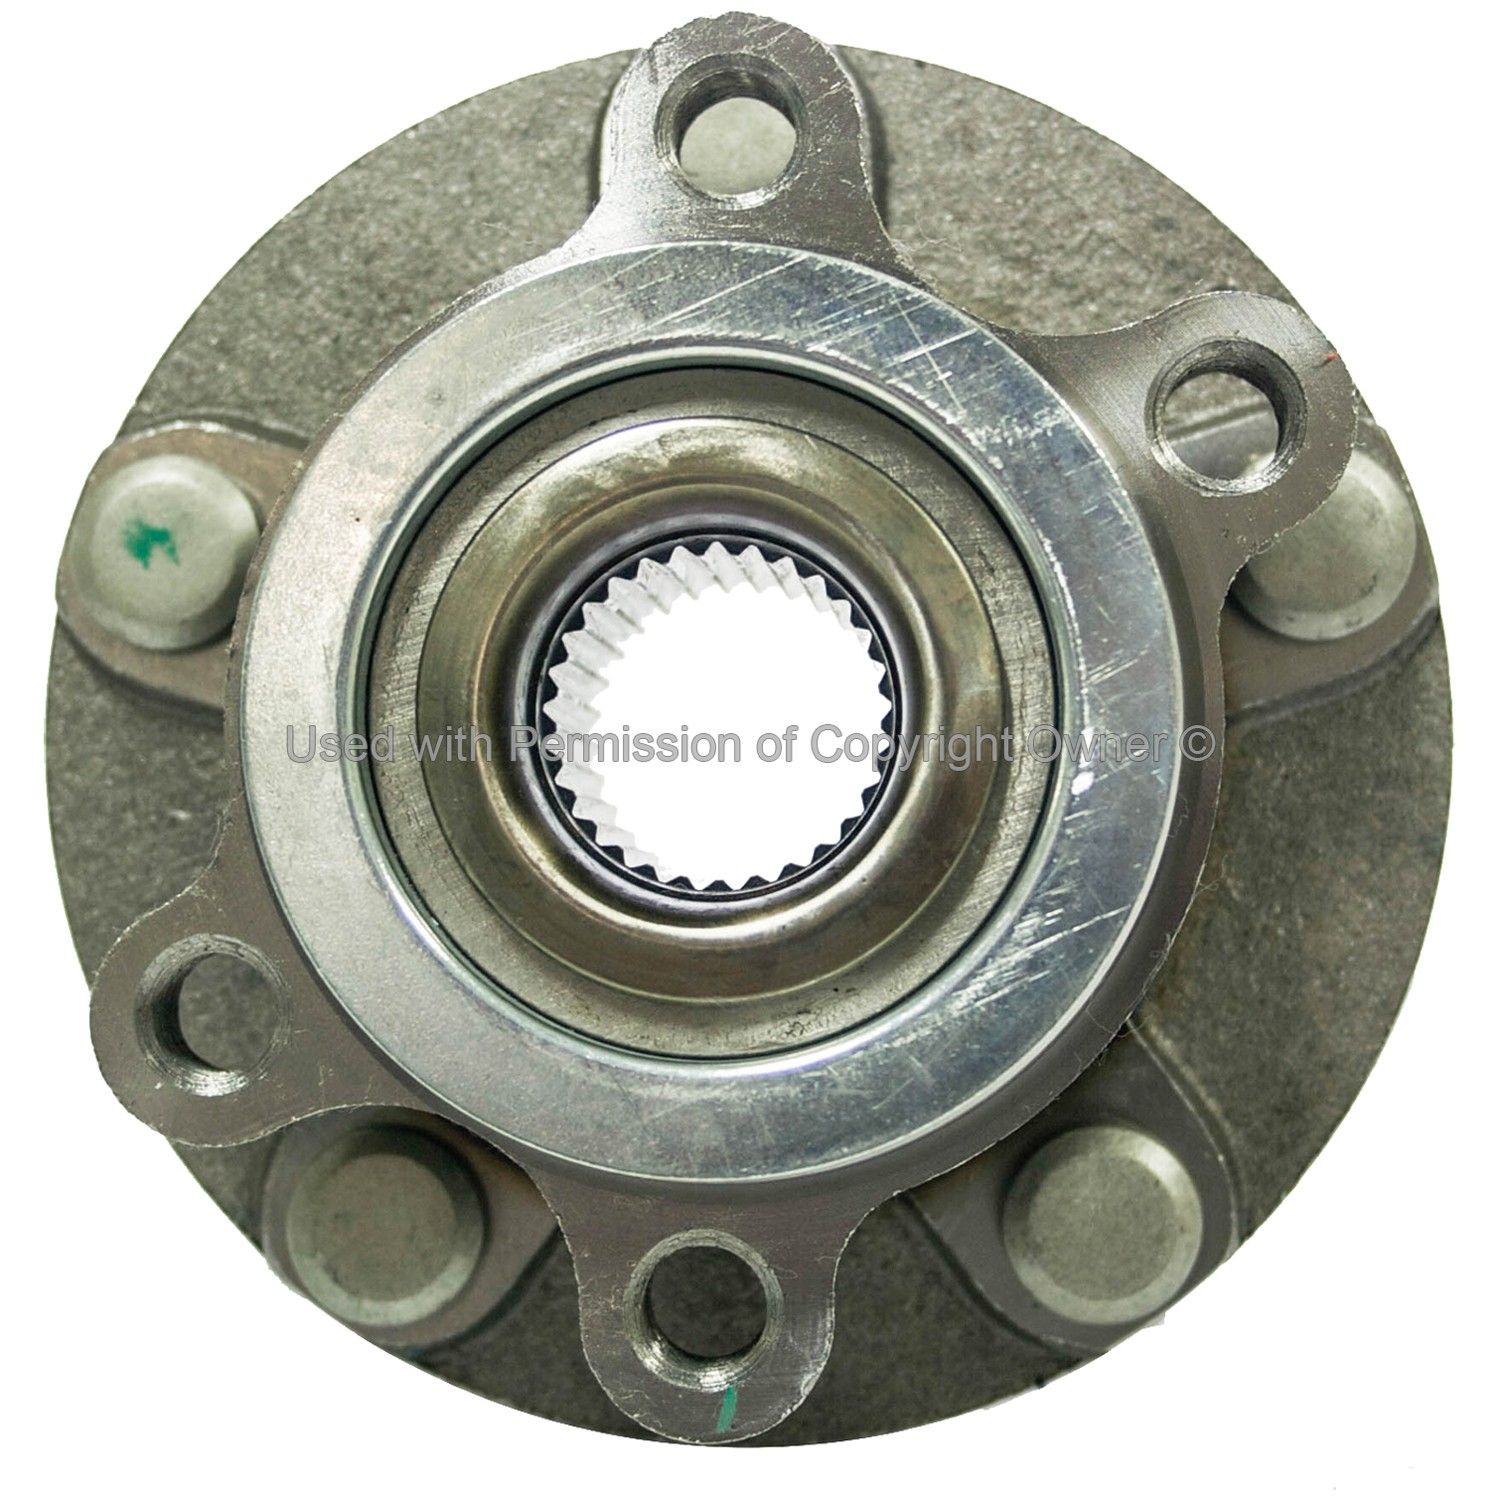 2007 Nissan Sentra Wheel Bearing and Hub Assembly - Front 4 Cyl 2.5L (MPA  WH513298) Wheel Hub Assembly Axle Nut Torque Spec: 92 ft-lbs / 125Nm ..